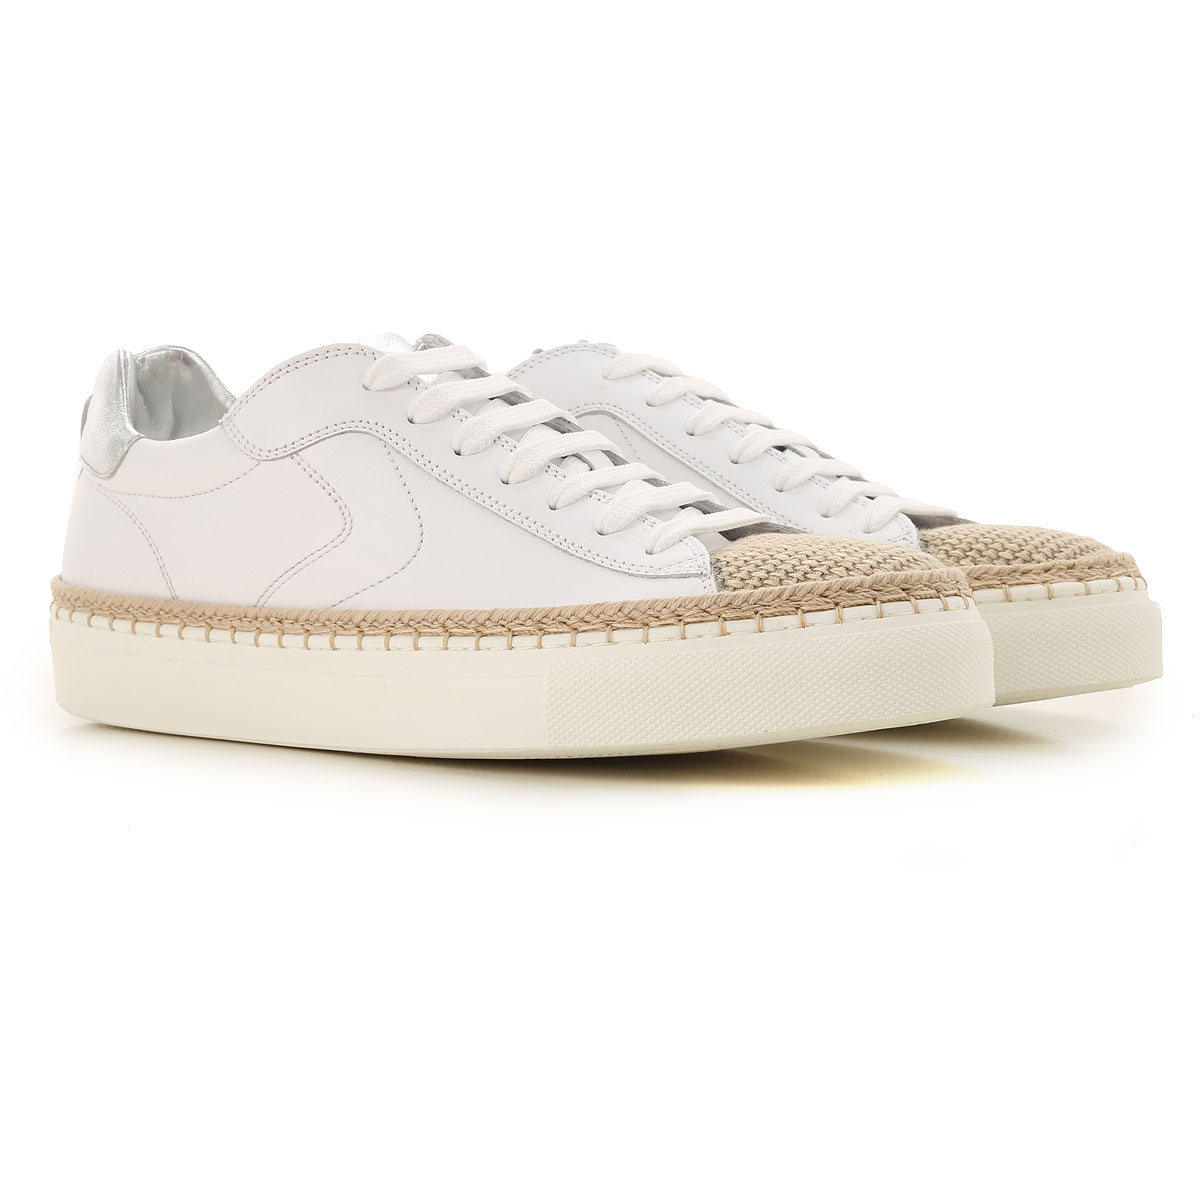 Voile Blanche Sneakers for Women On Sale, White, Leather, 2019, 10 7 8